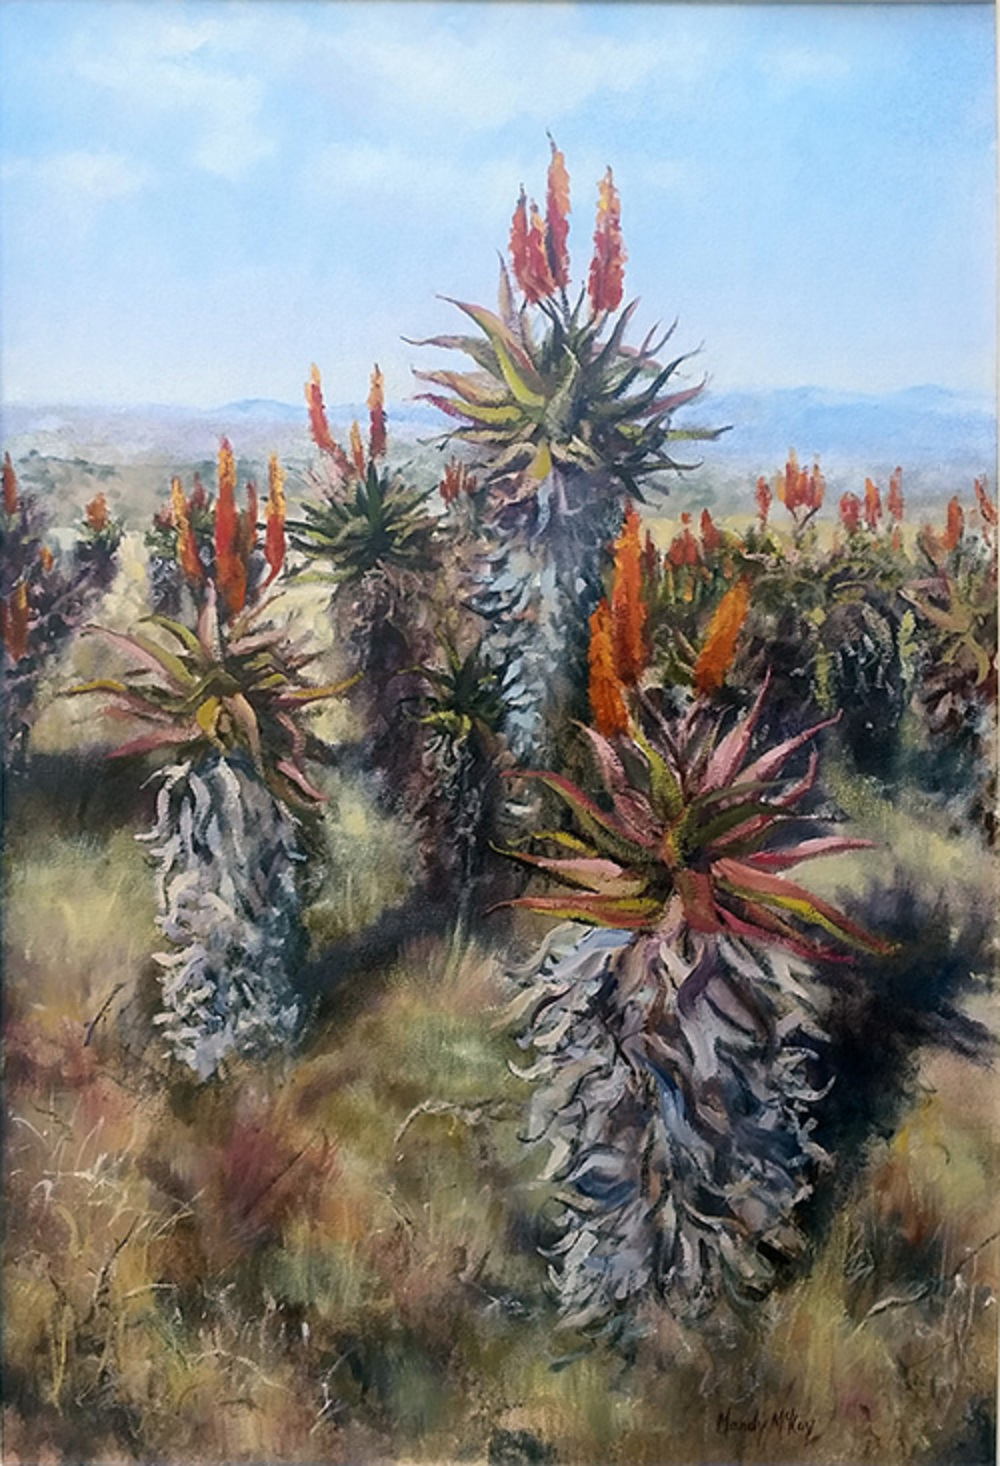 WINTER VELDT, EASTERN CAPE (SASA, highly commended certificate)